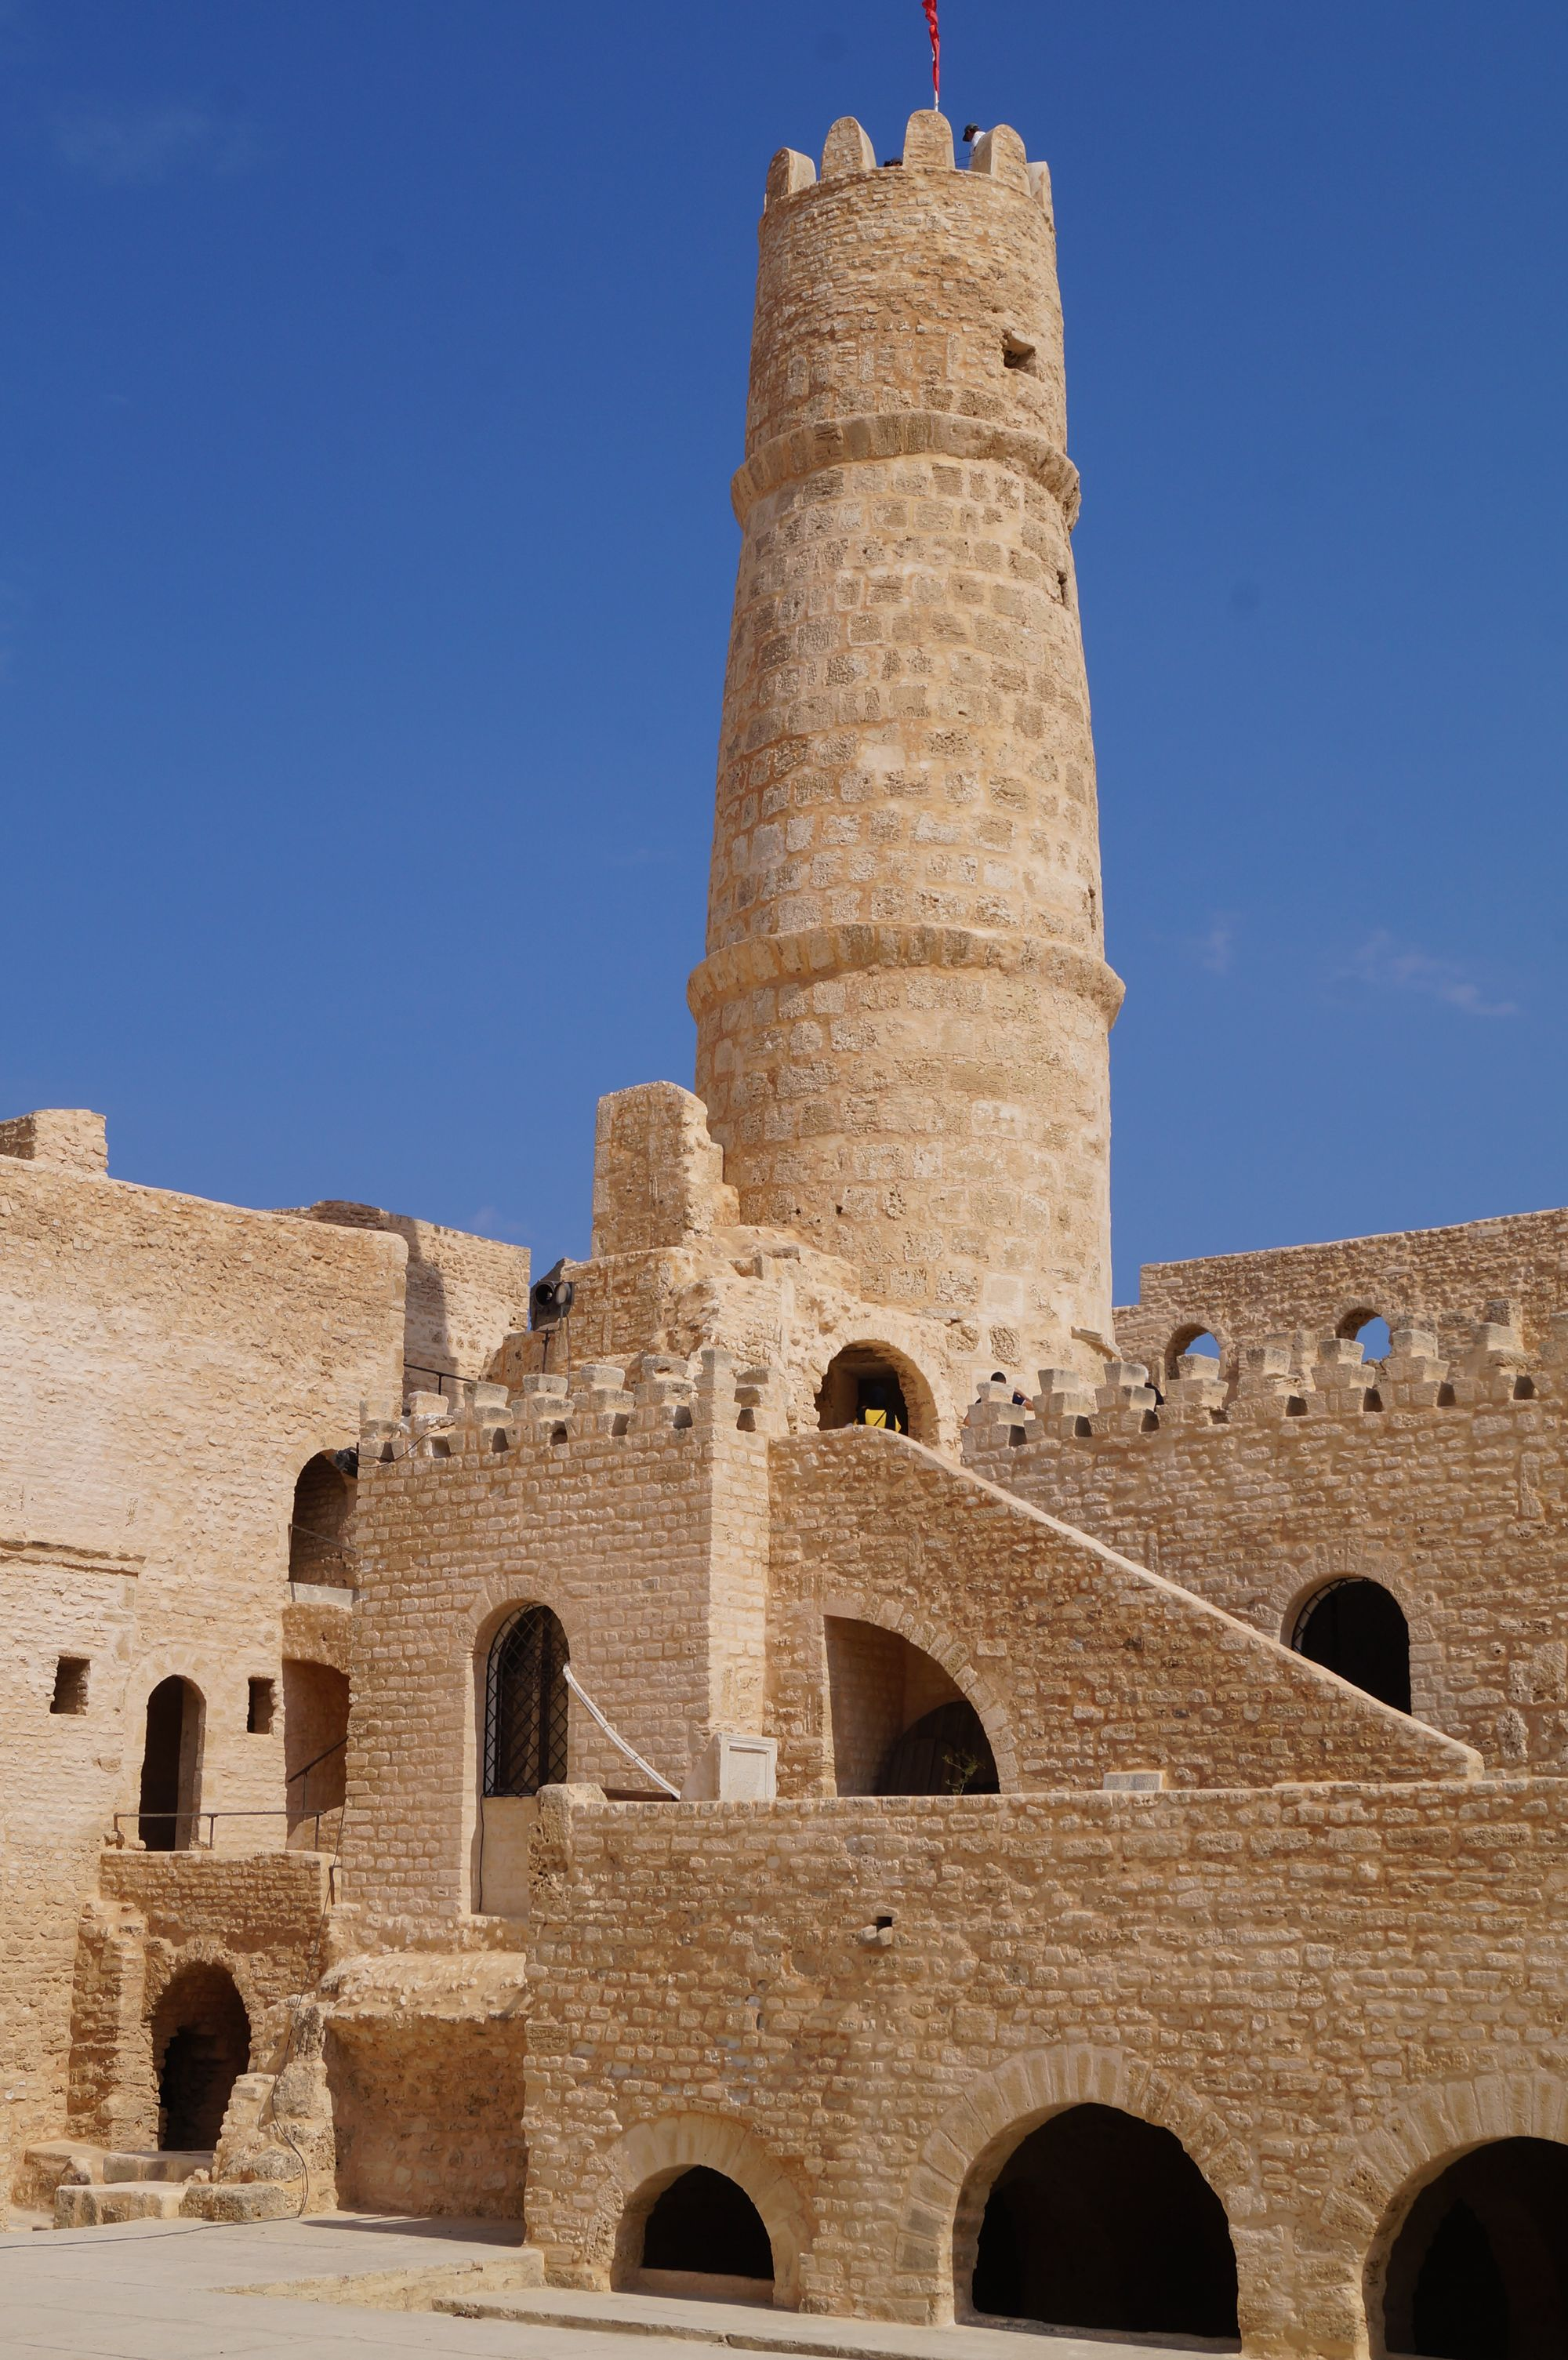 The fortress of Ribat